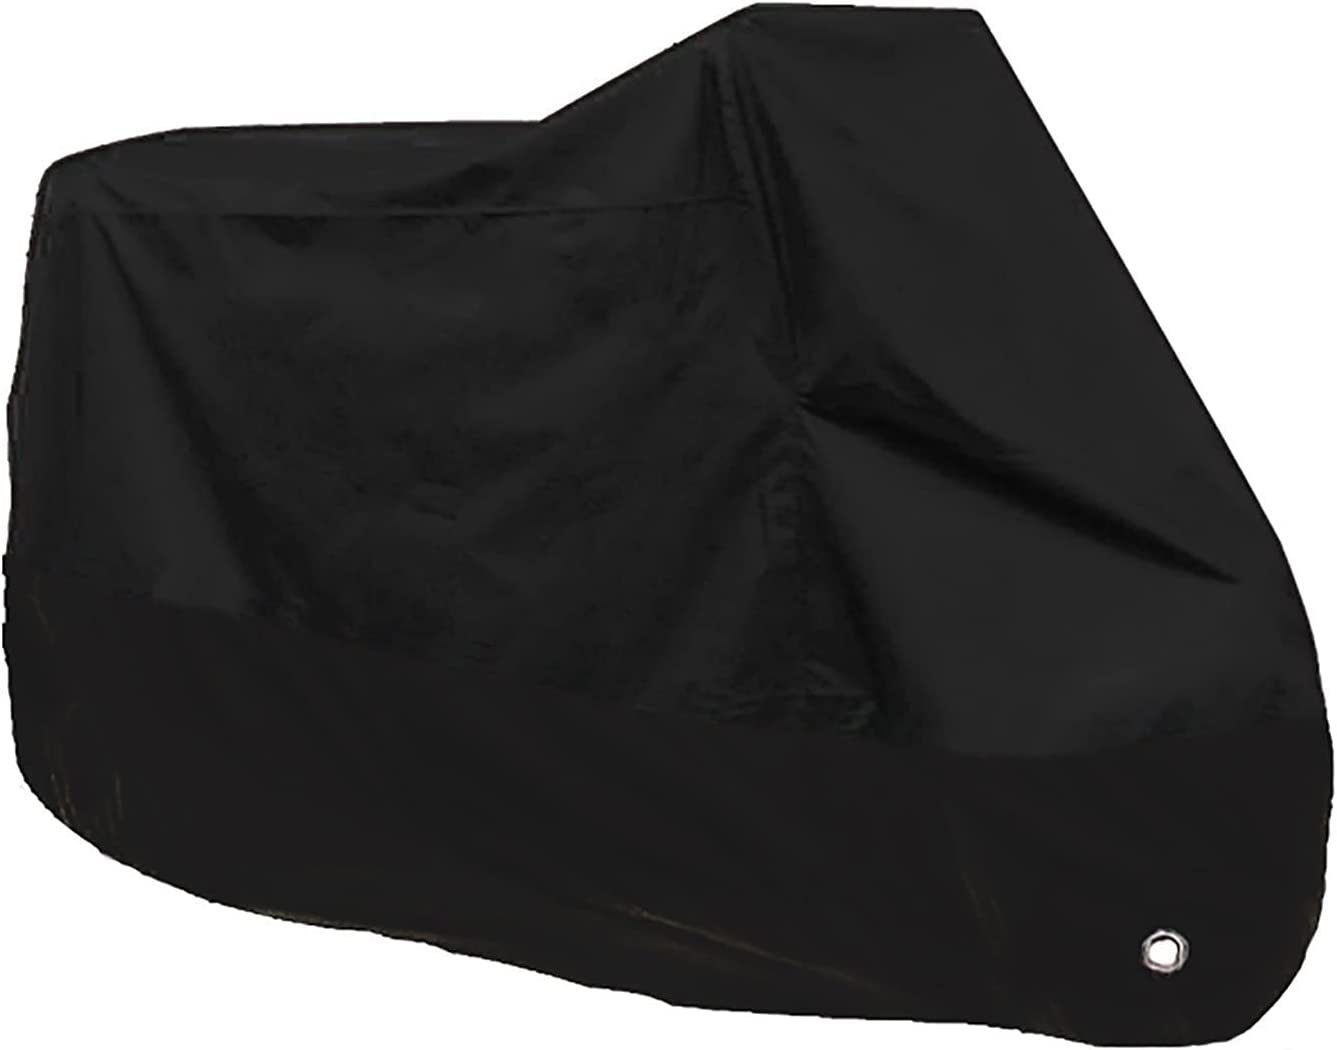 ACHsj Motorcycle Cover Seattle Mall Waterproof wi Hood Compatible security